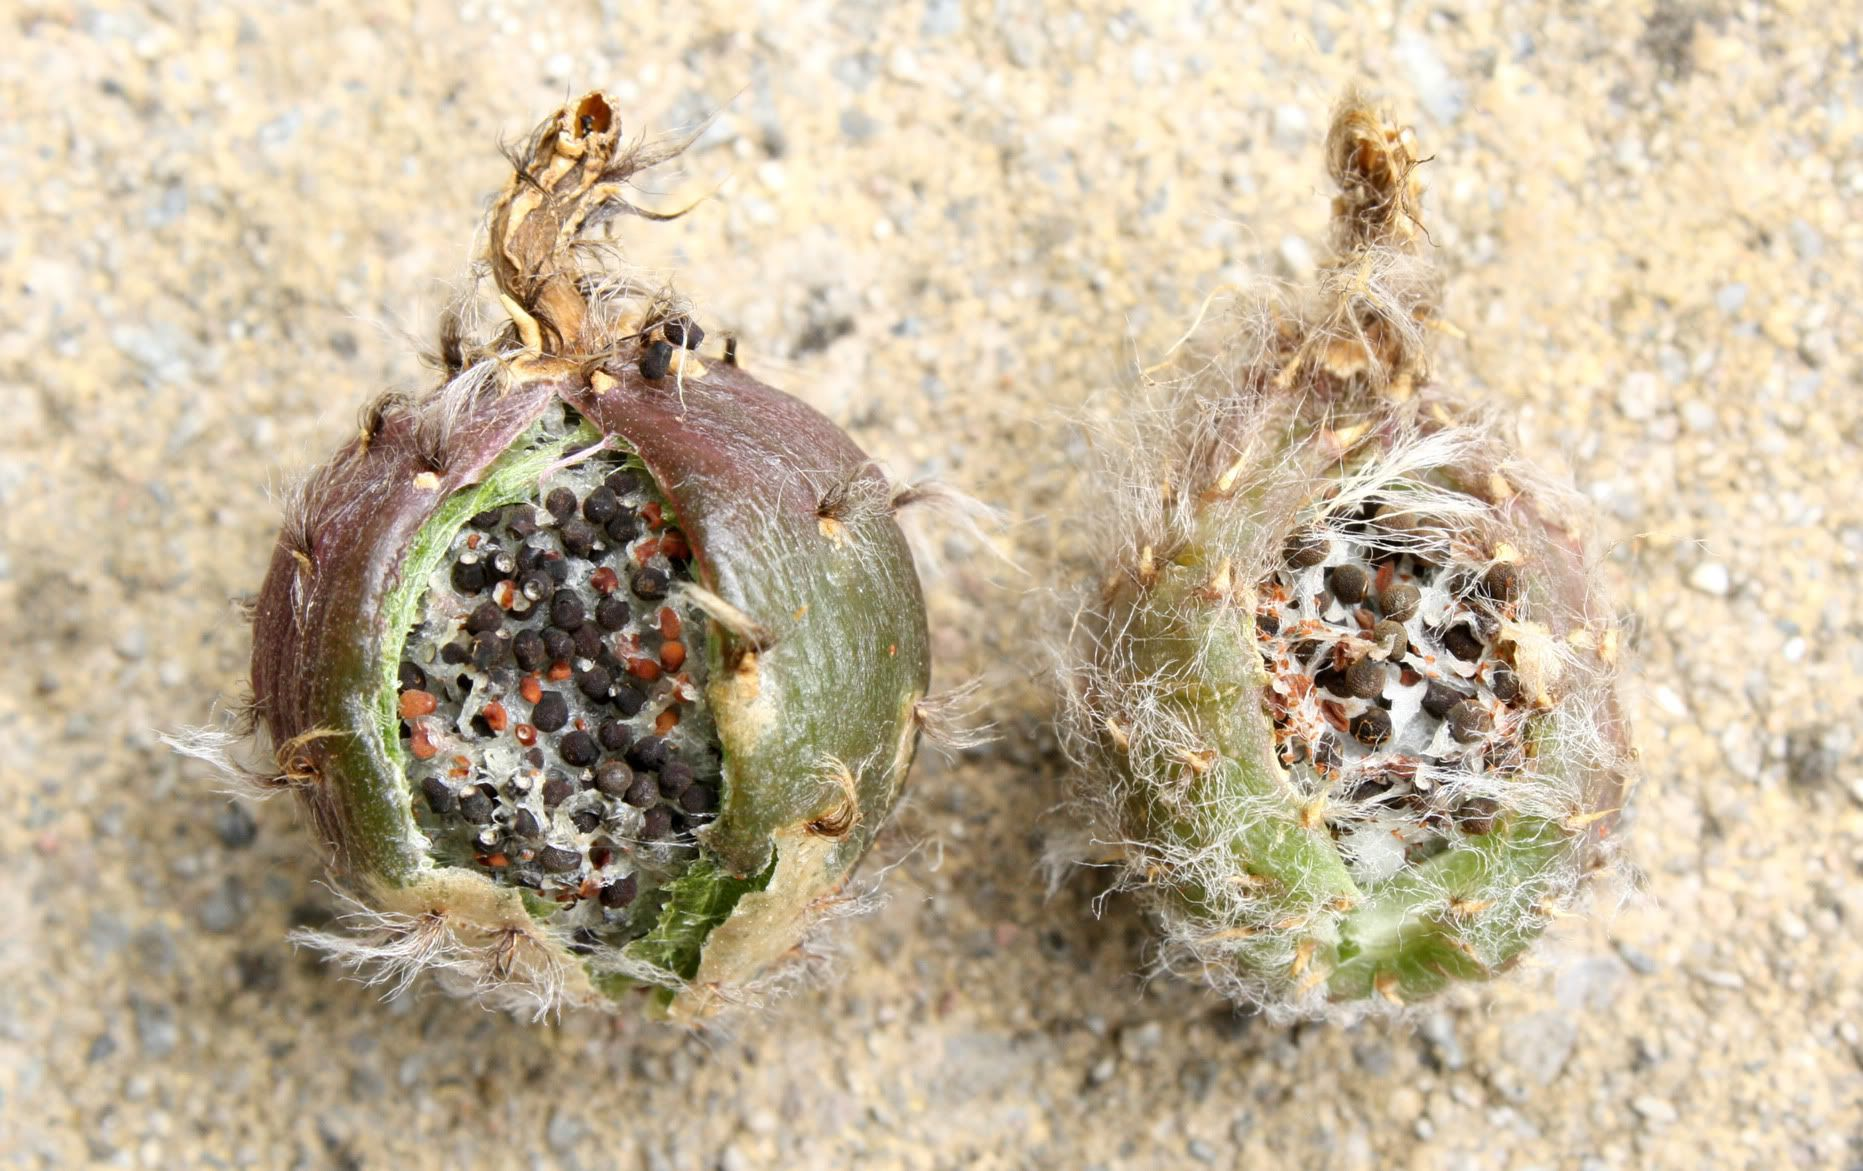 Echinopsis seed pods